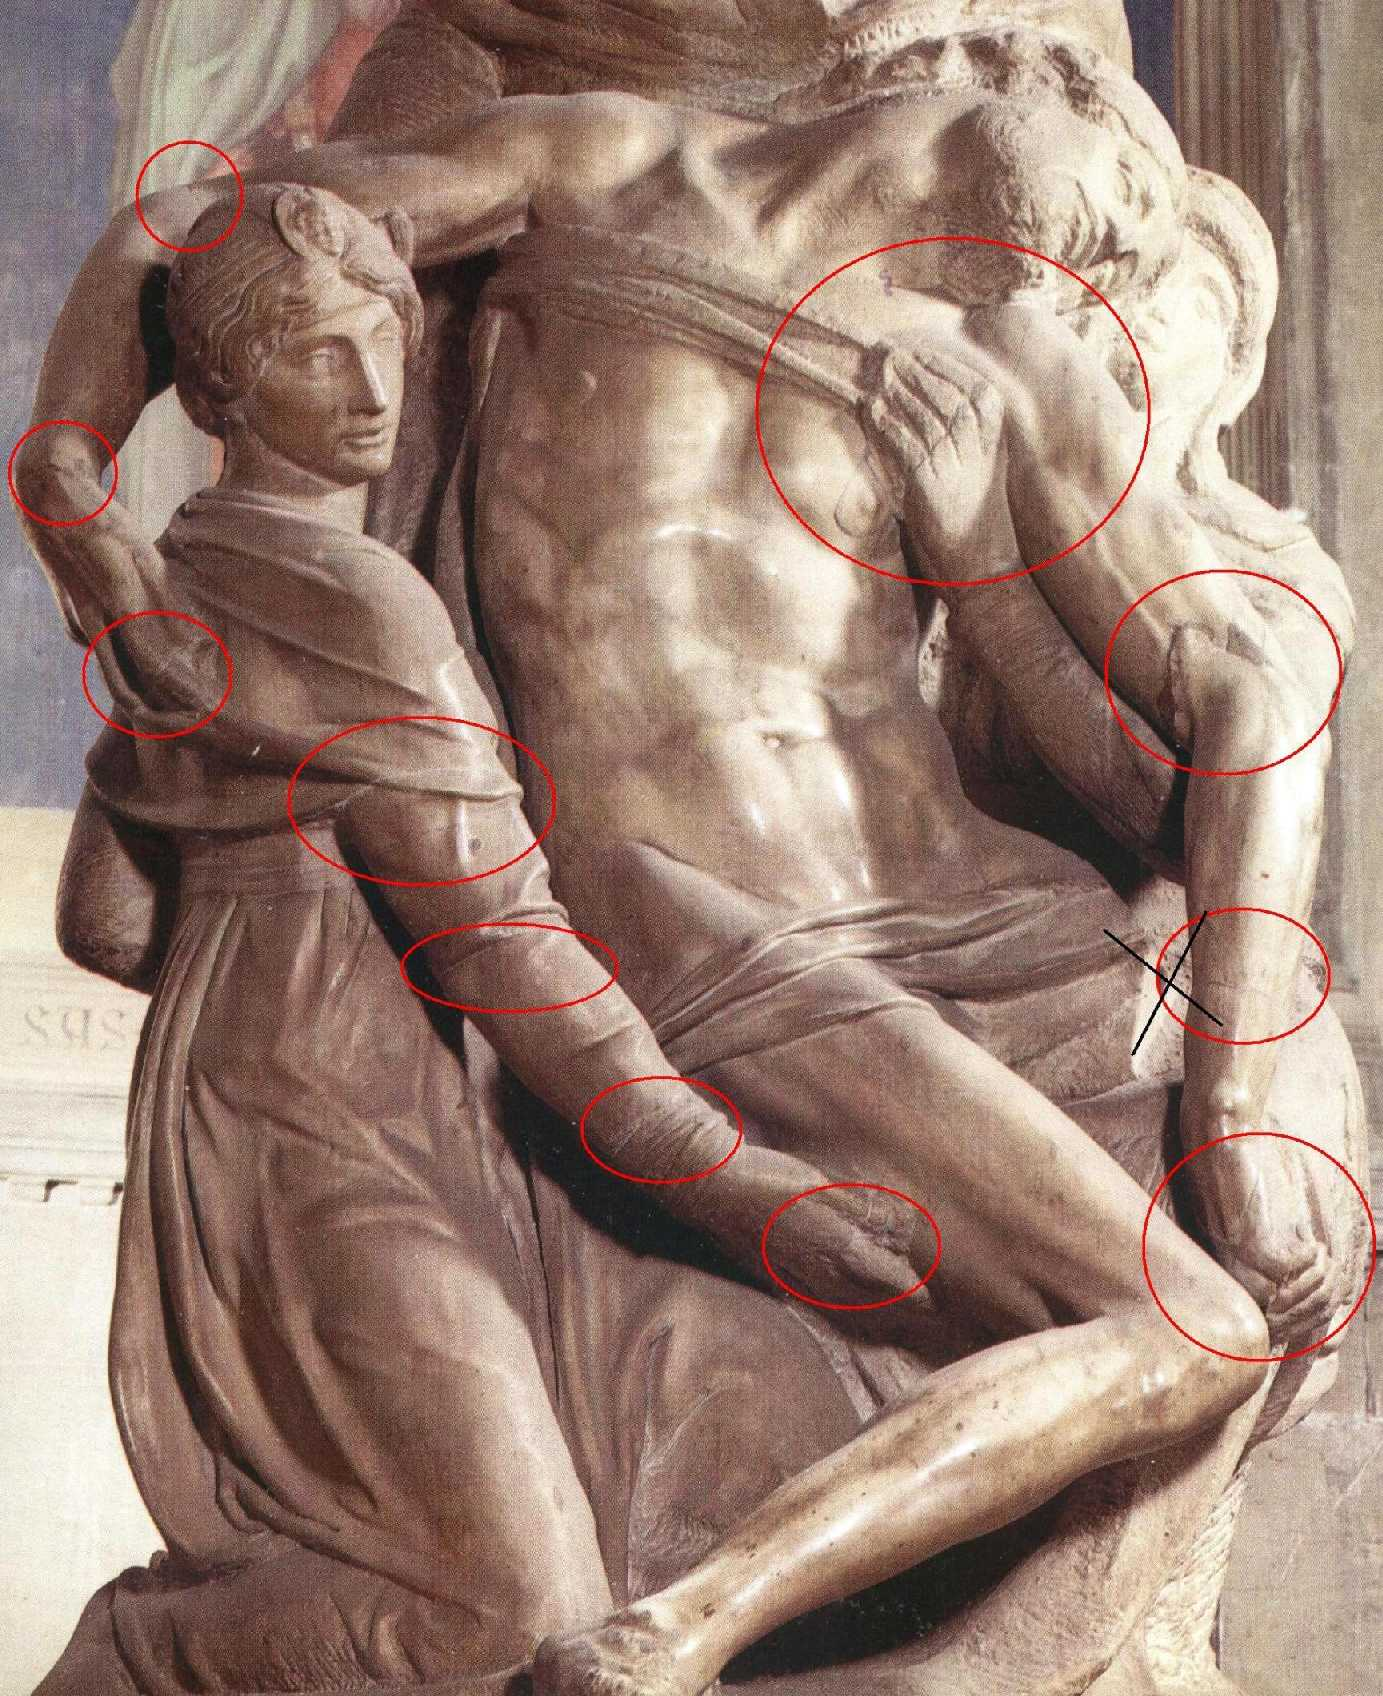 an analysis of the accomplishments of michelangelo The creation of adam » michelangelo buonarroti (italian, 1475-1564) in 1508, pope julius ii (1444-1513) commissioned michelangelo to paint a series of ceiling frescos for the sistine chapel, a project that became one of the artist's most celebrated achievements.